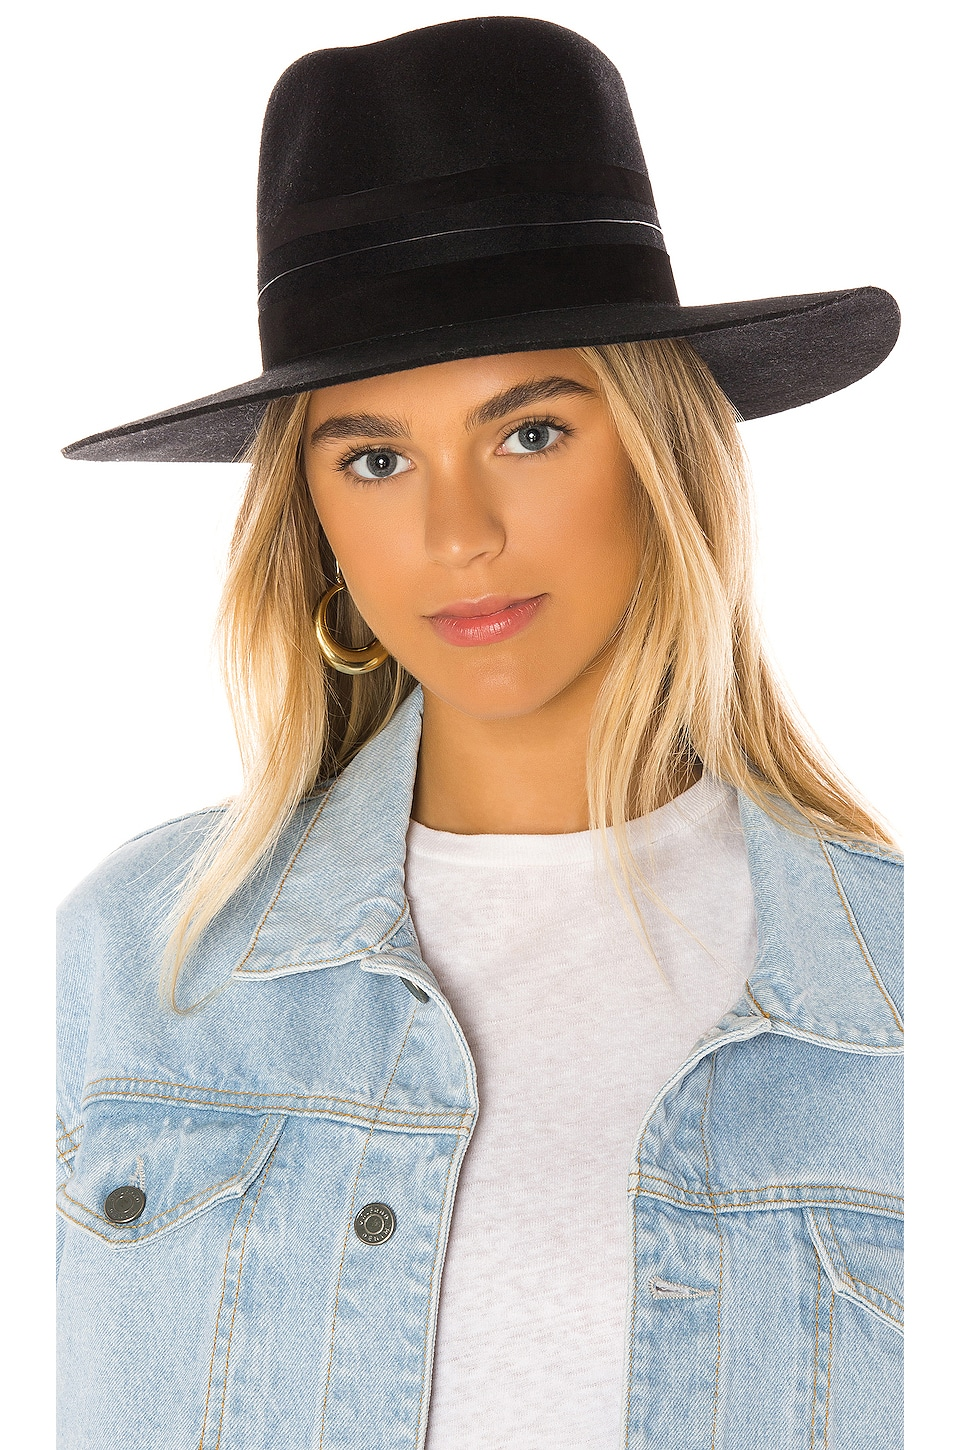 Janessa Leone Austin Hat in Black